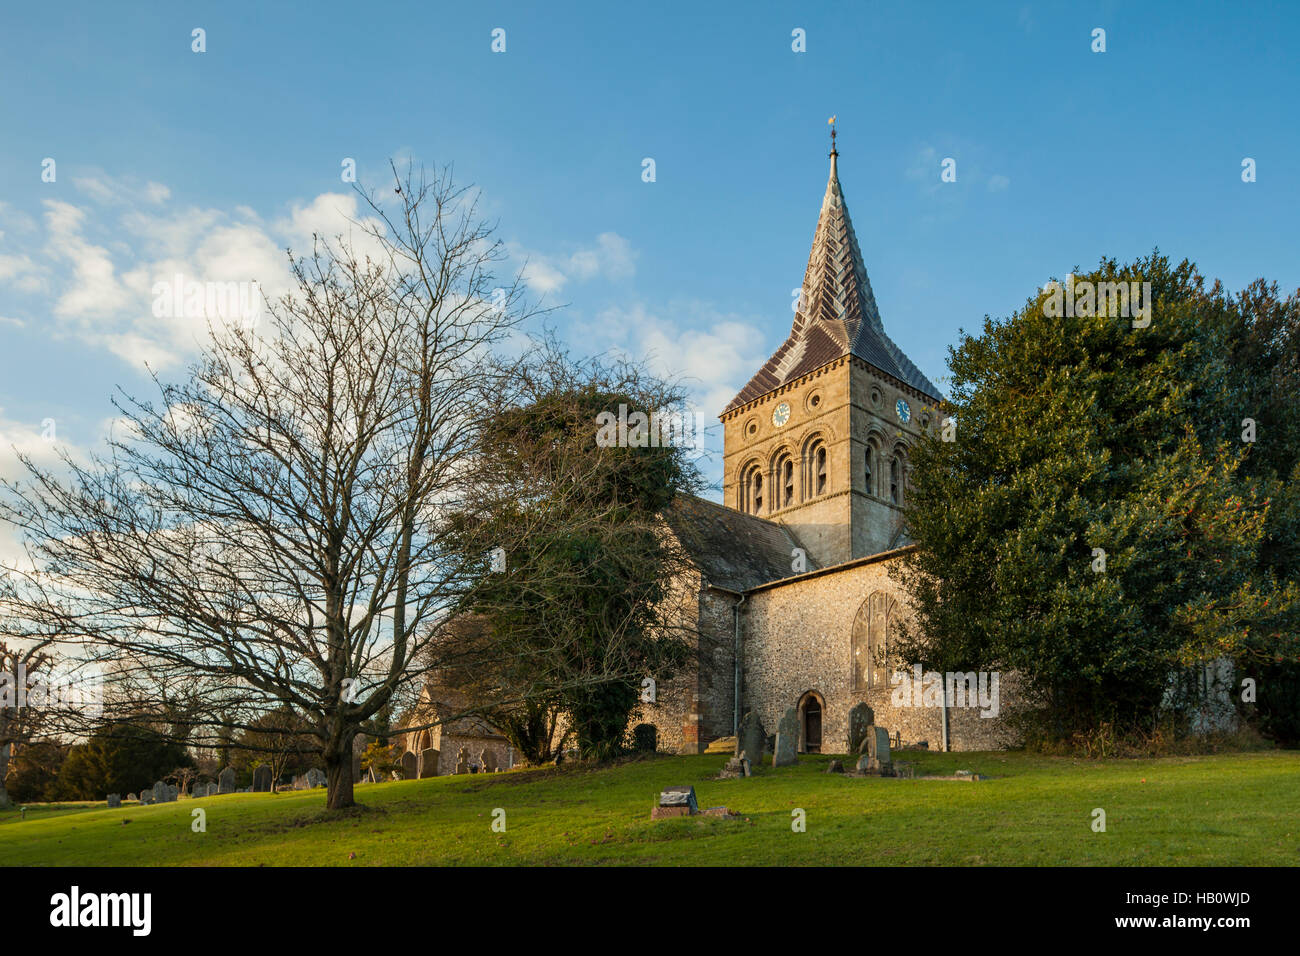 Autumn at All Saints church in East Meon, Hampshire, England. - Stock Image